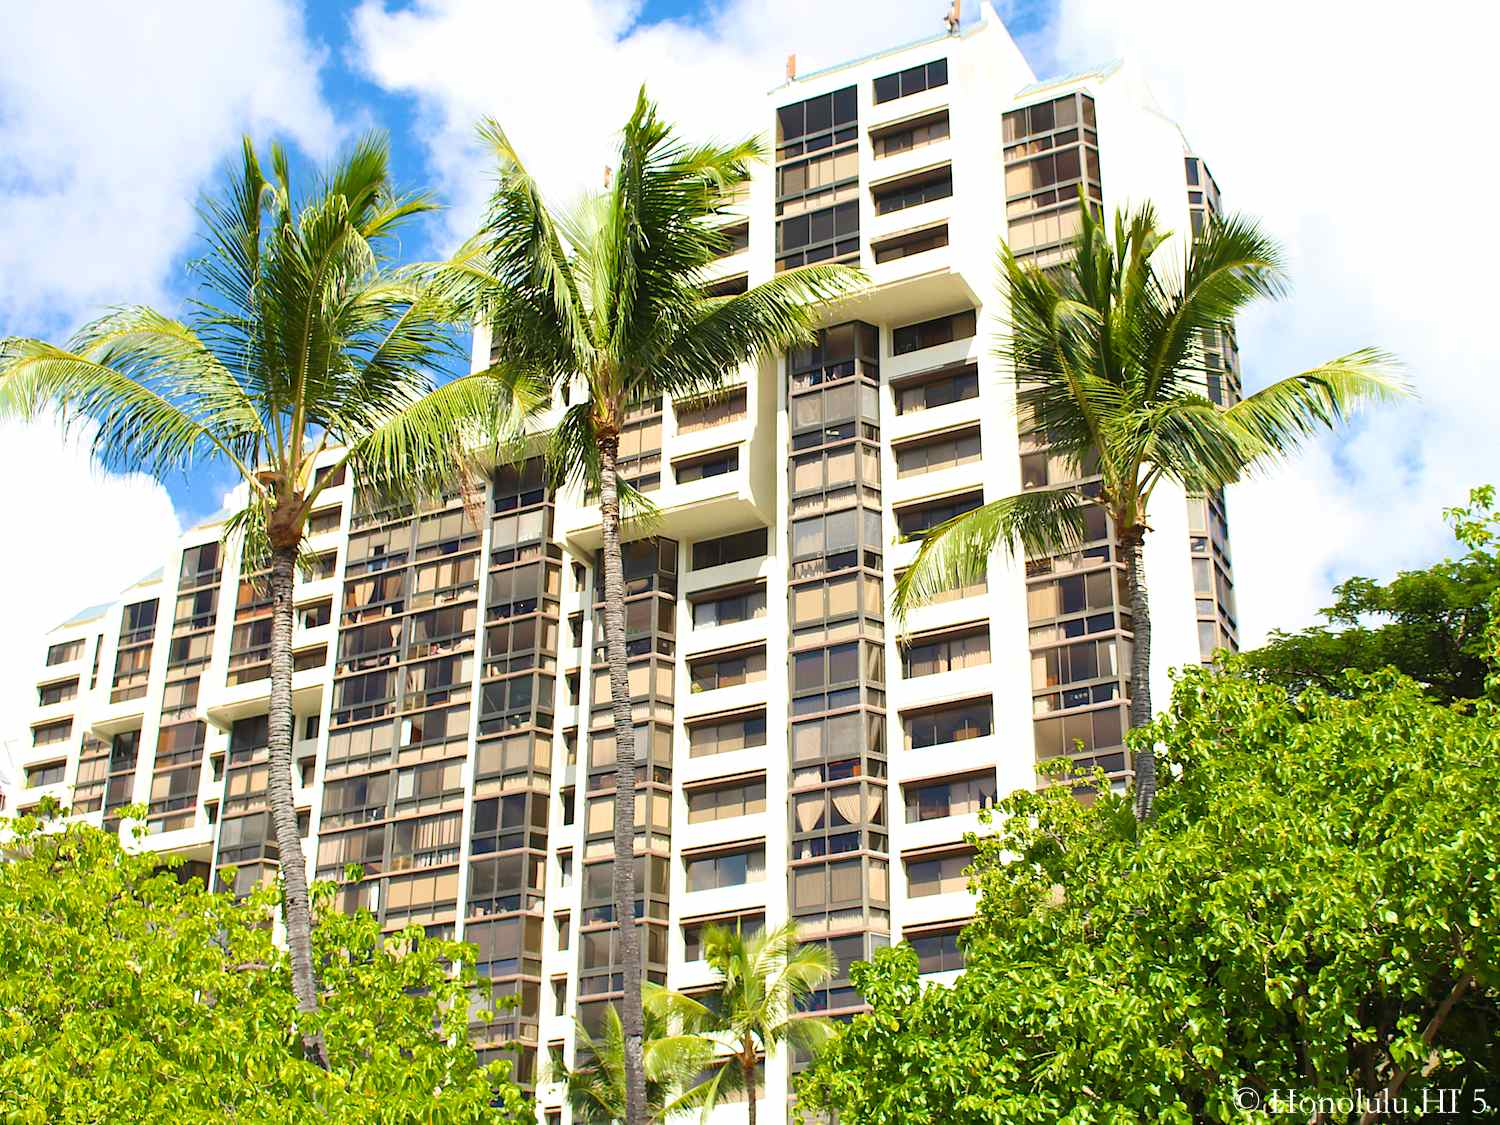 One of Mauna Luan Condo Towers in Hawaii Kai with Palm Trees Swaying in the Front